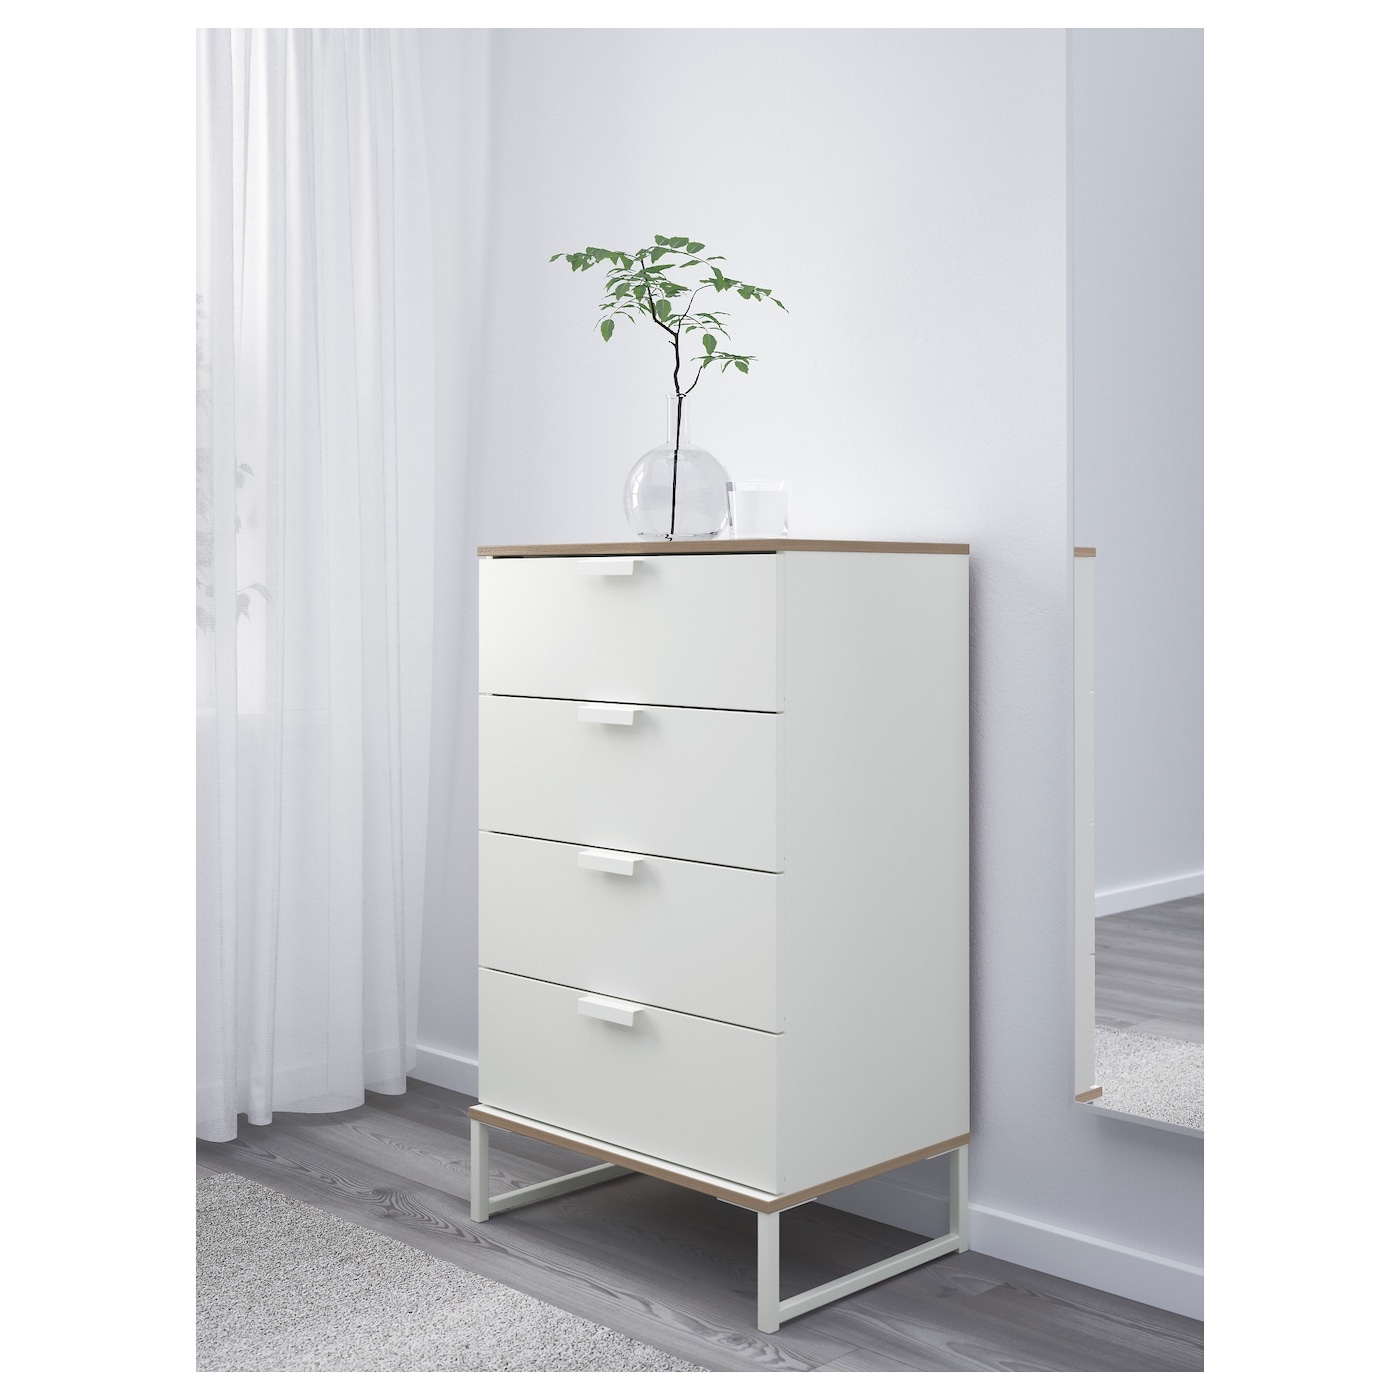 trysil commode 4 tiroirs blanc gris clair 60 x 99 cm ikea. Black Bedroom Furniture Sets. Home Design Ideas